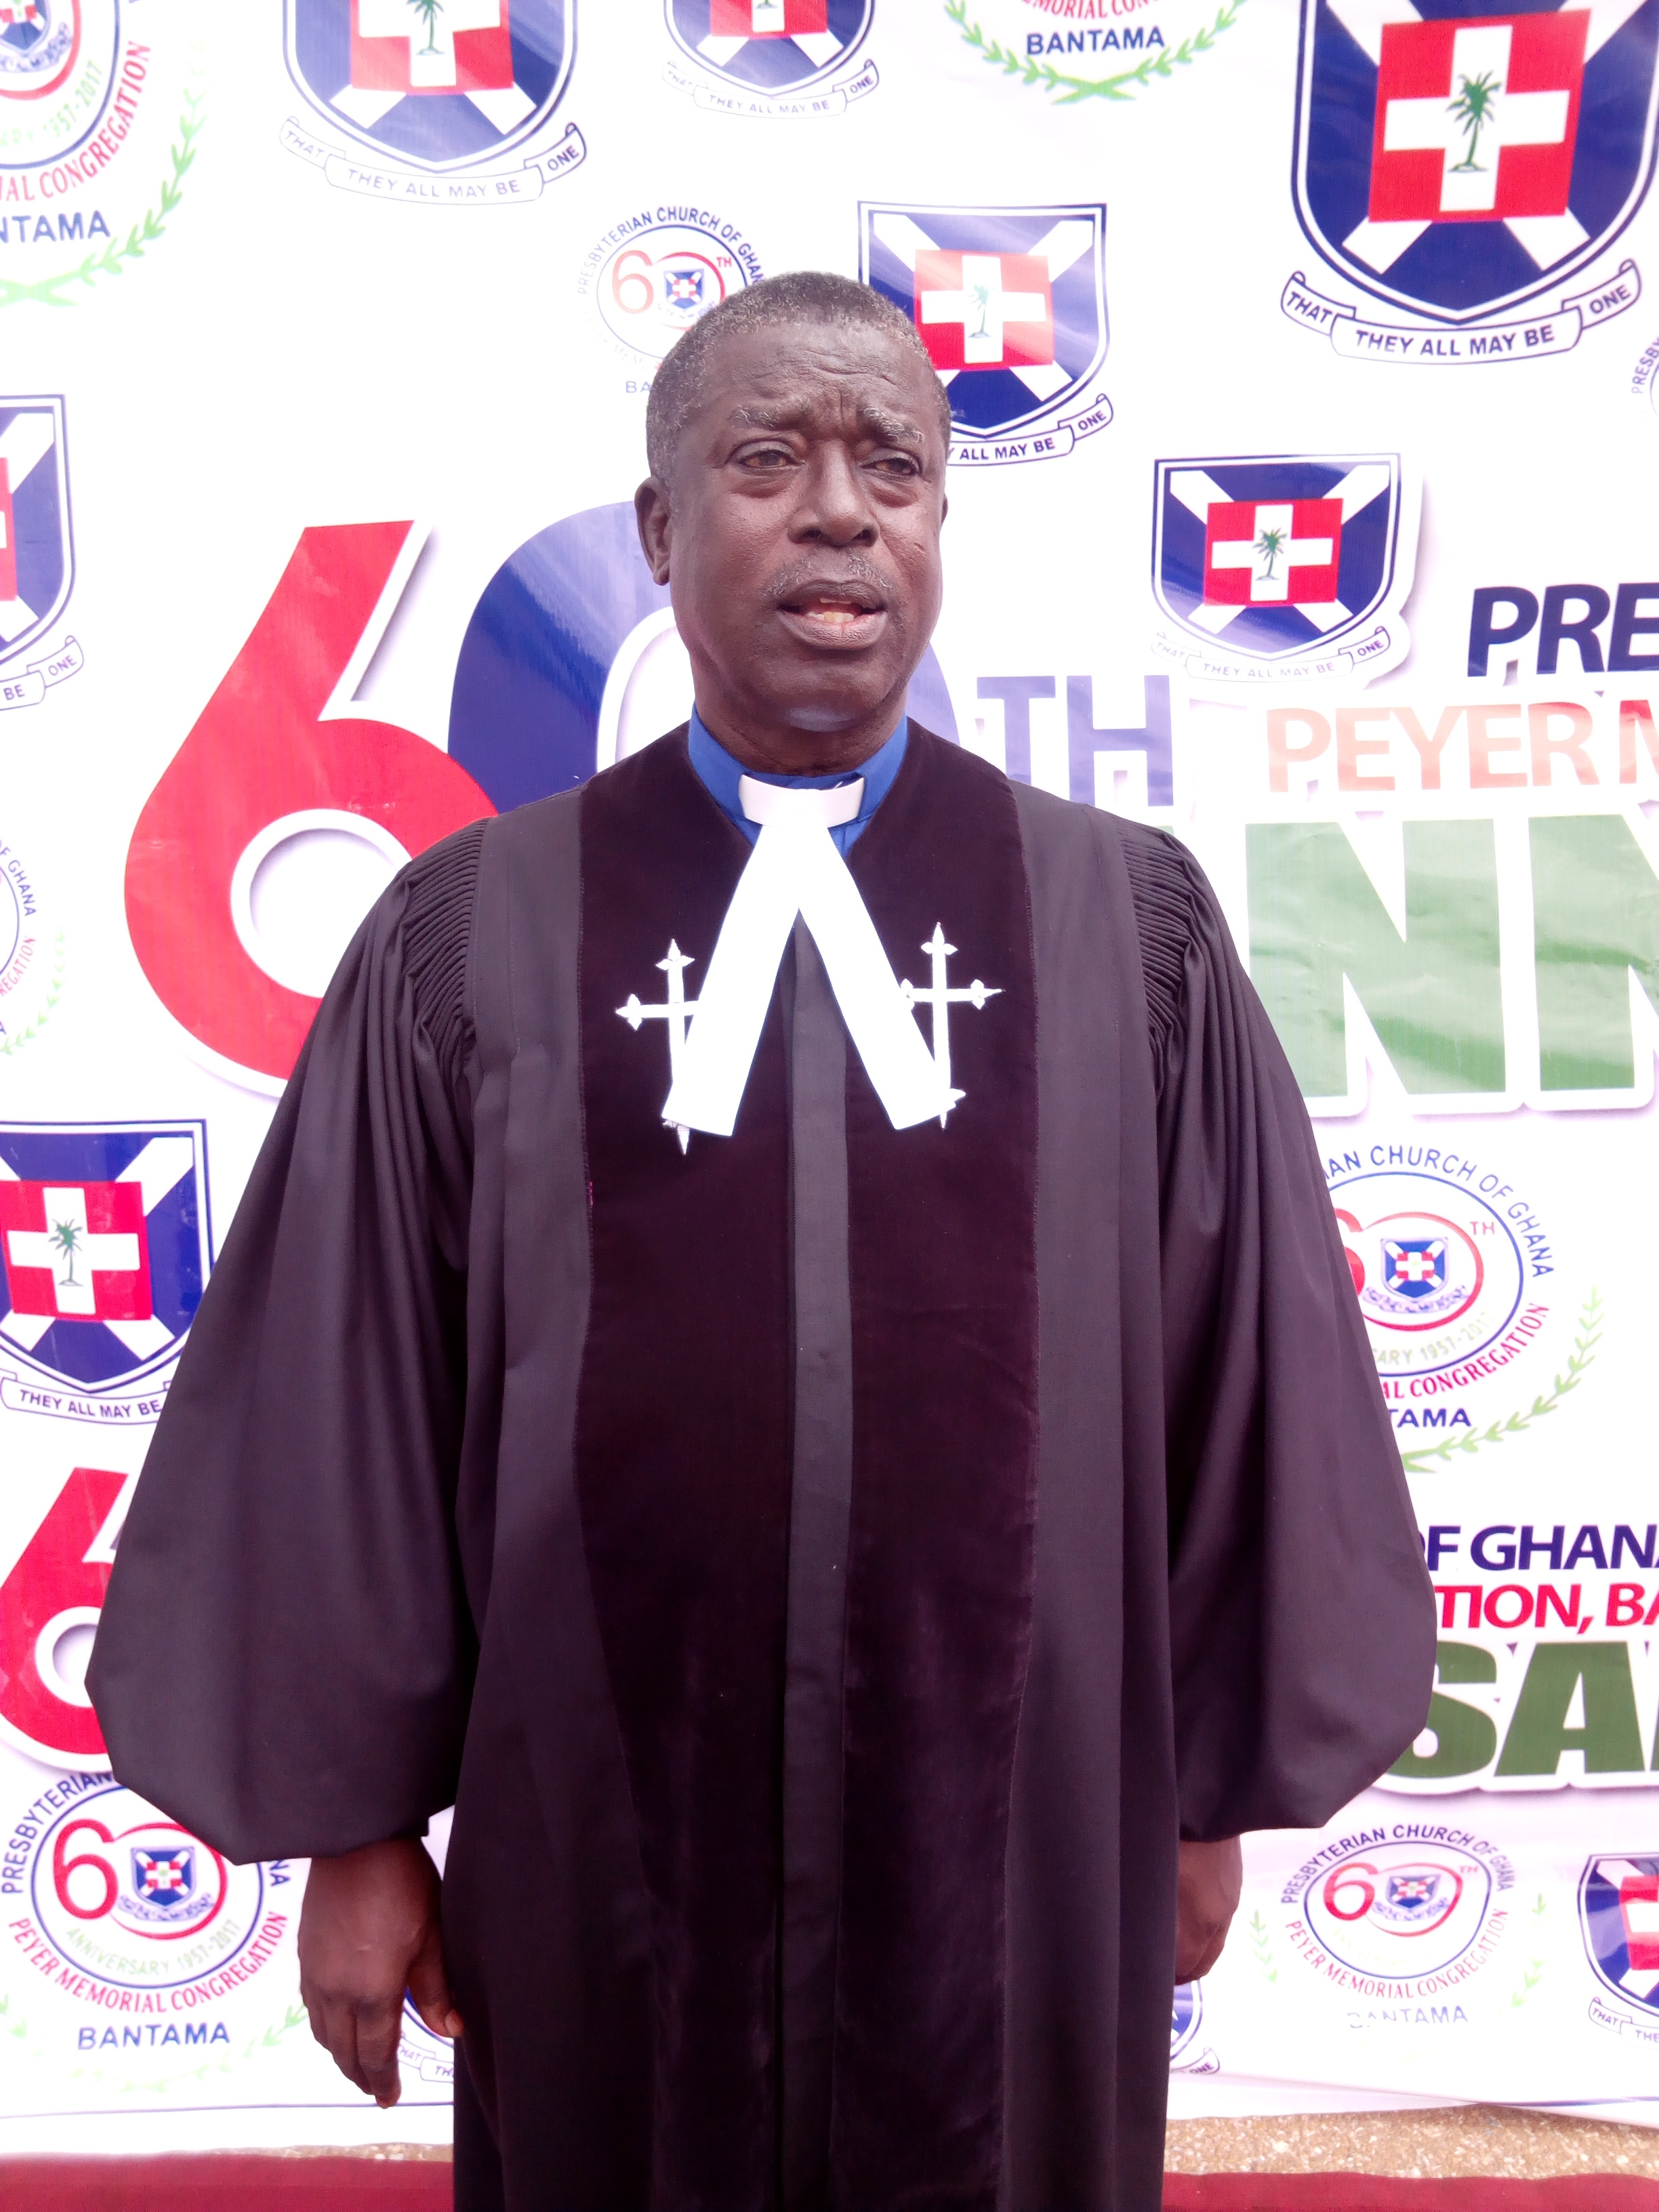 Presby Church lauds government over move to hand over ...